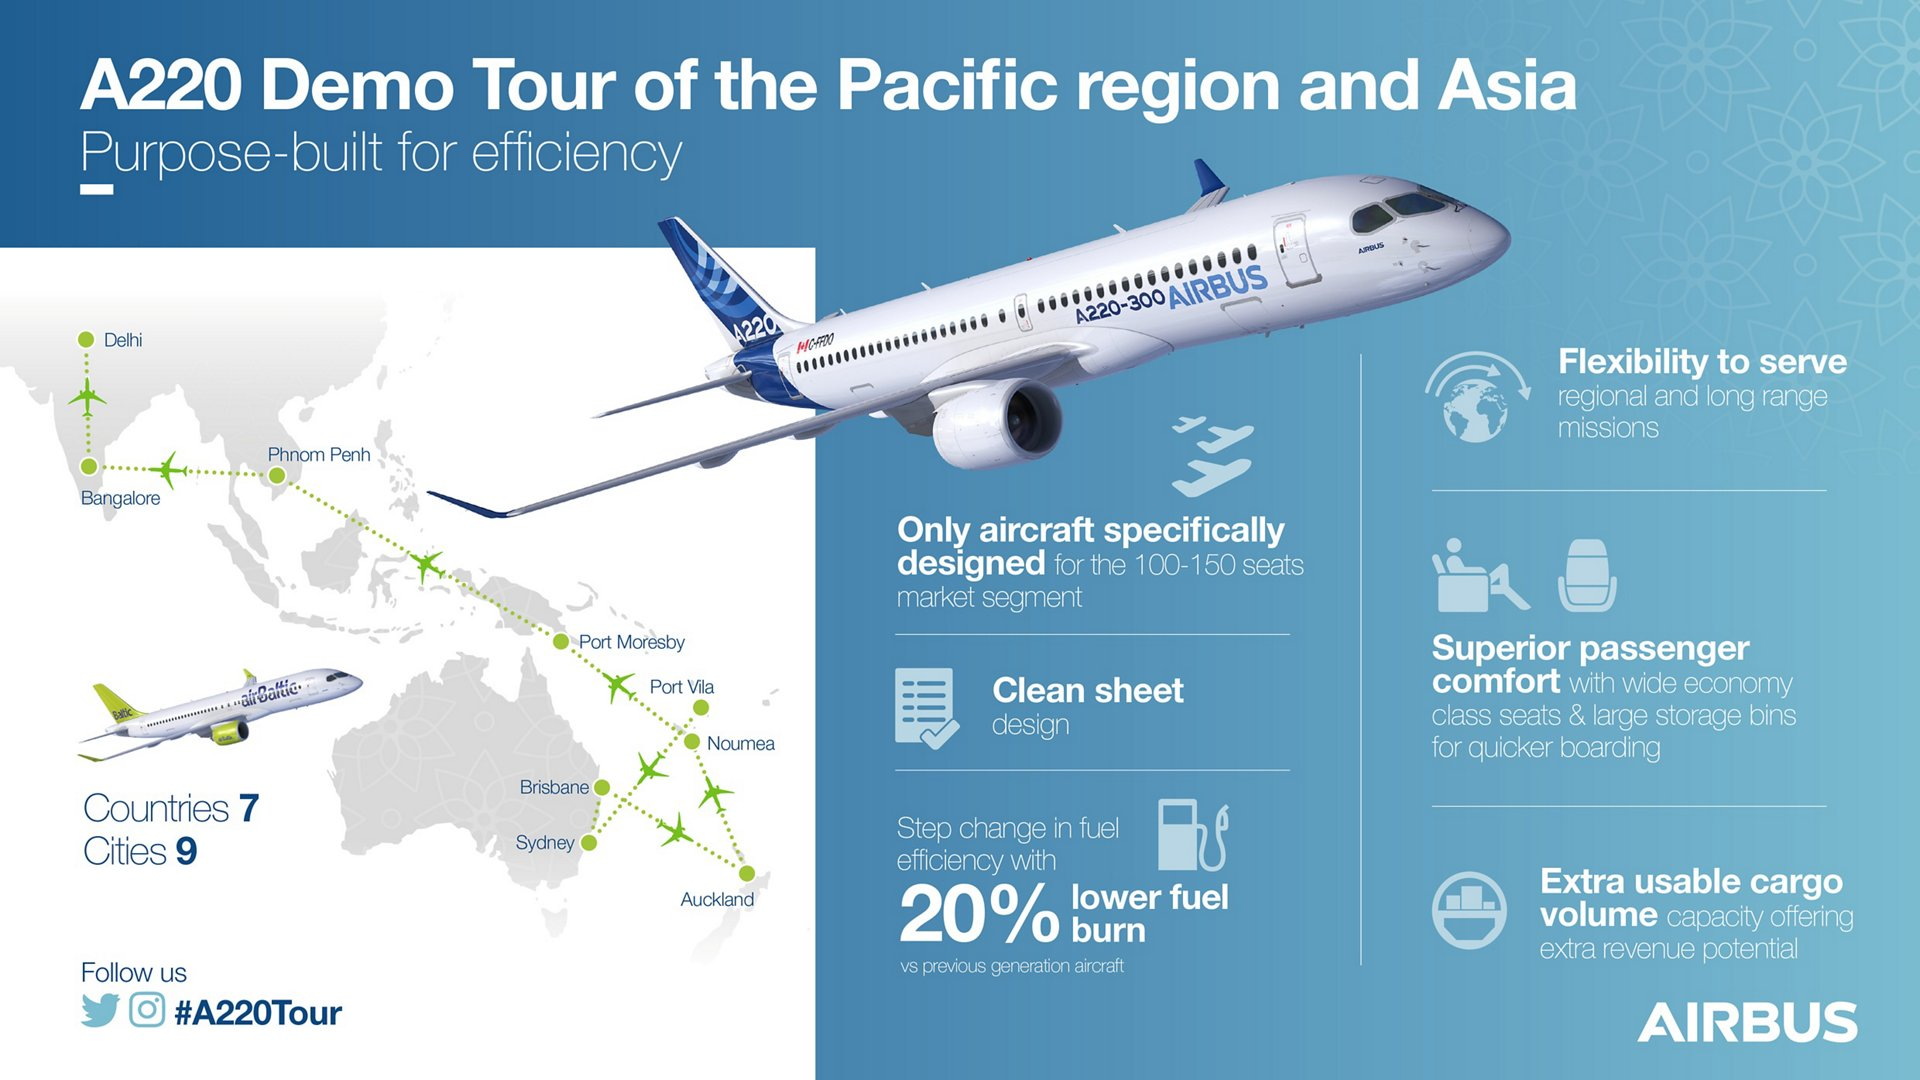 Resultado de imagen para Airbus launches A220 demonstration tour Pacific region